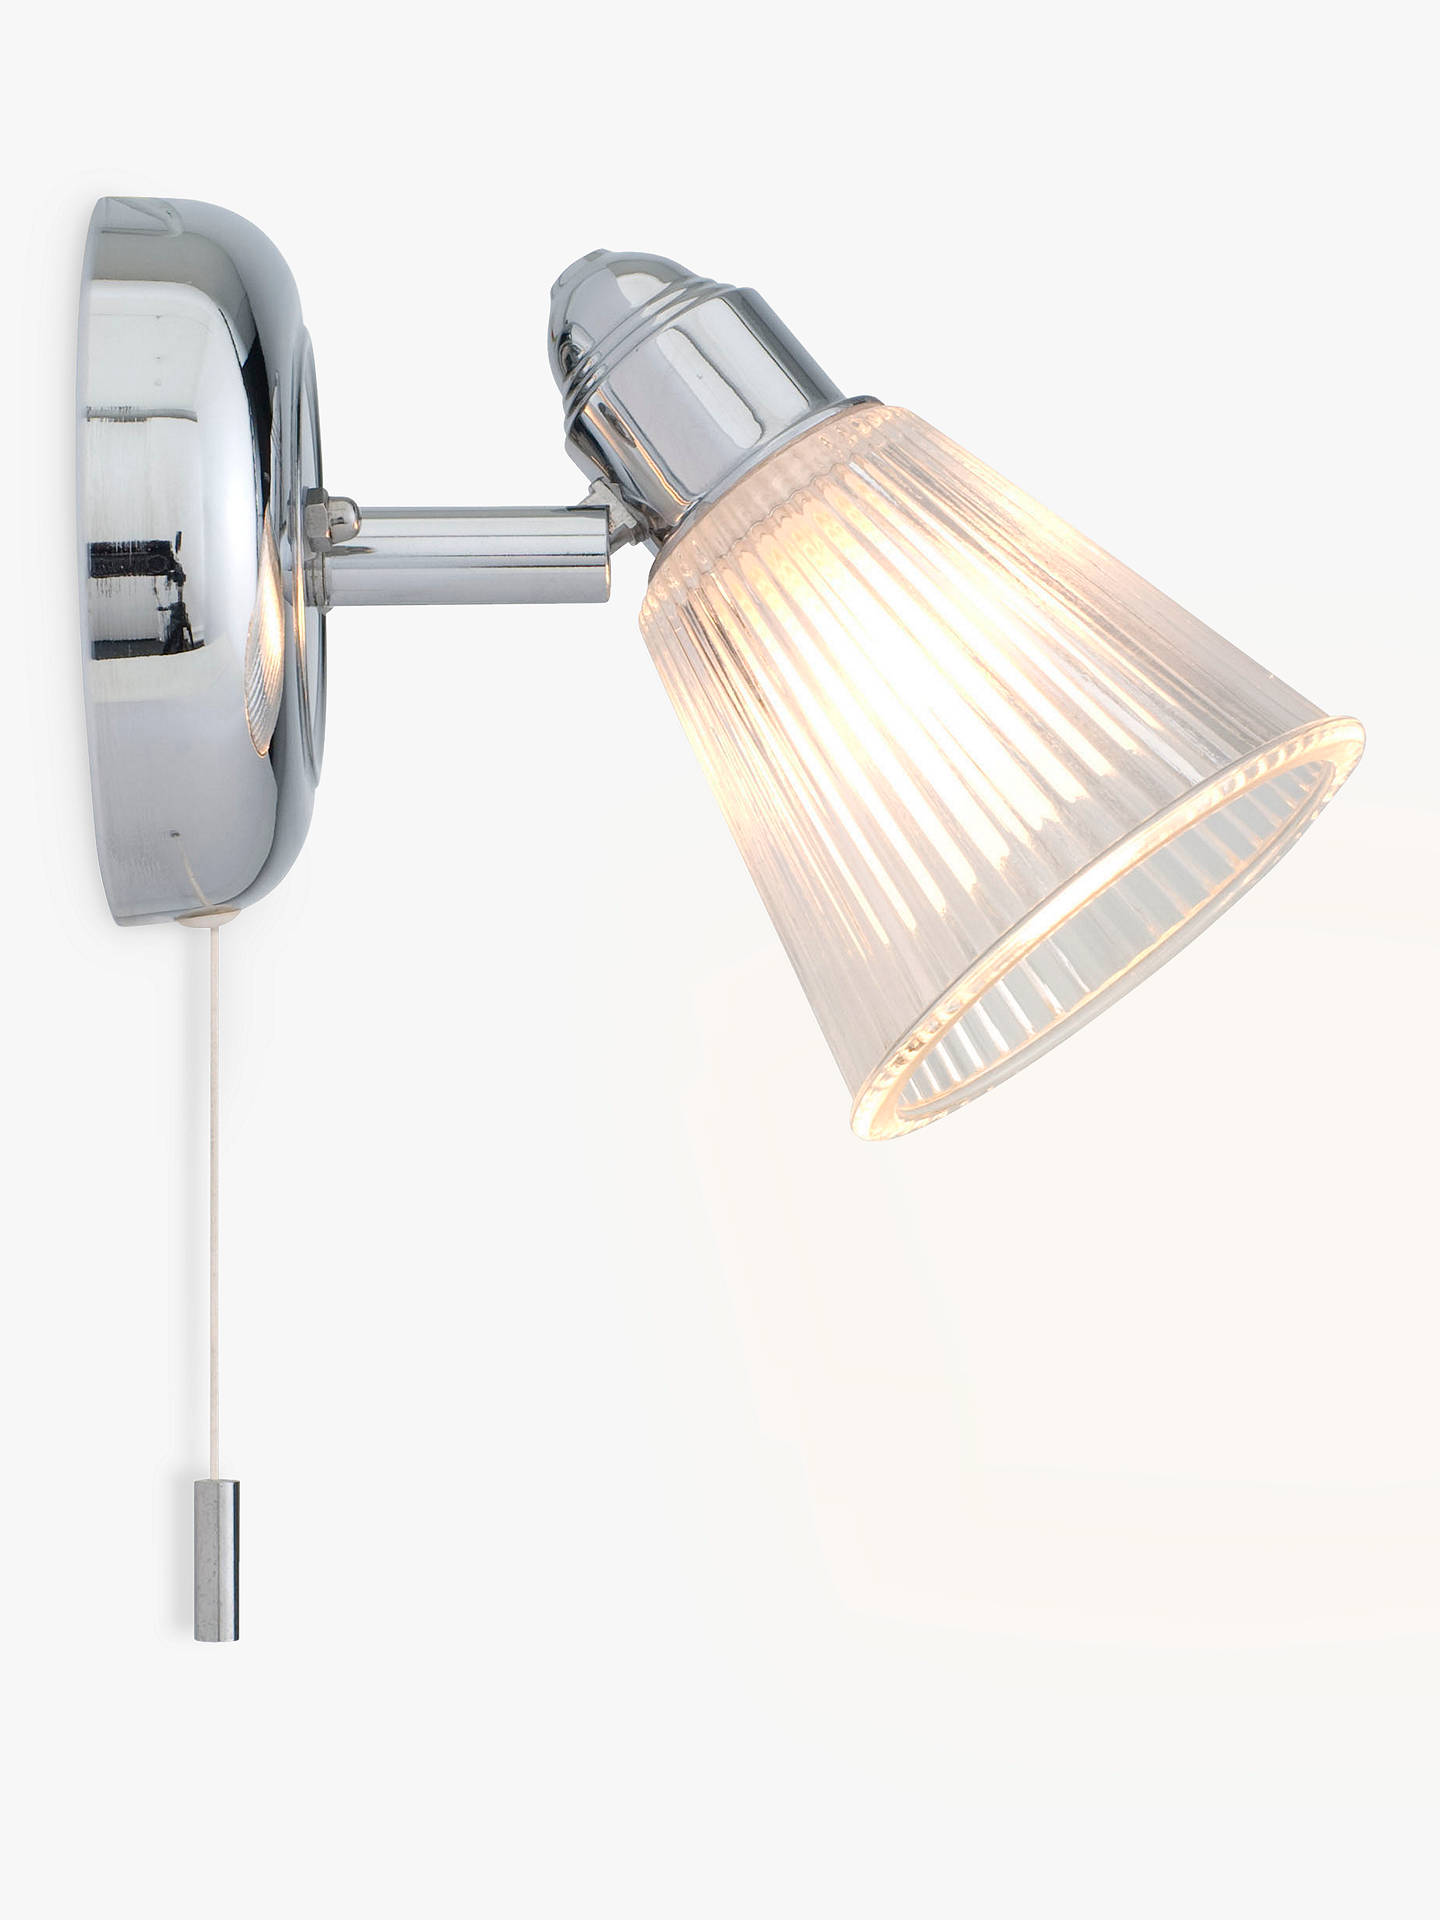 BuyJohn Lewis & Partners Lucca Single Bathroom Spotlight Online at johnlewis.com